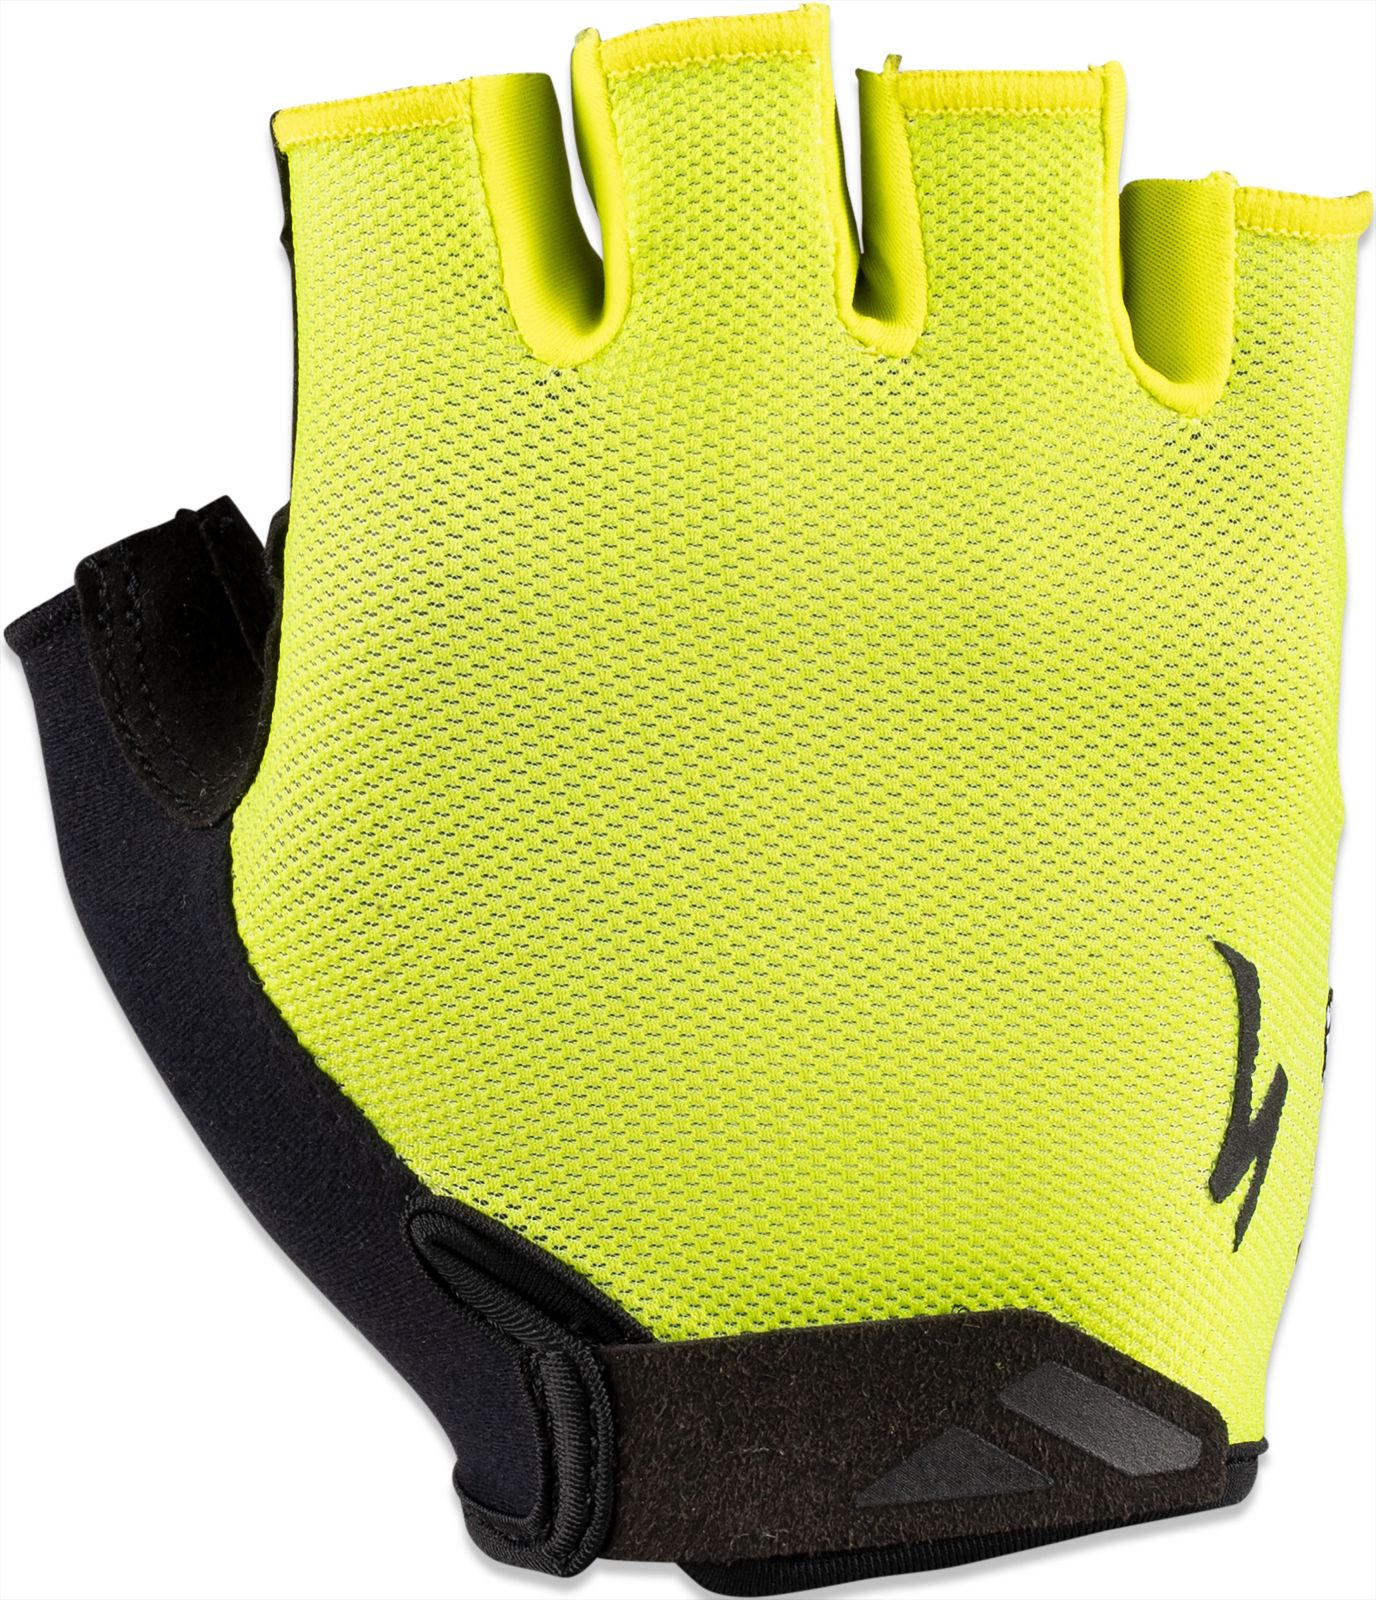 Specialized BG Sport Gel Glove SF - hyper green XXL